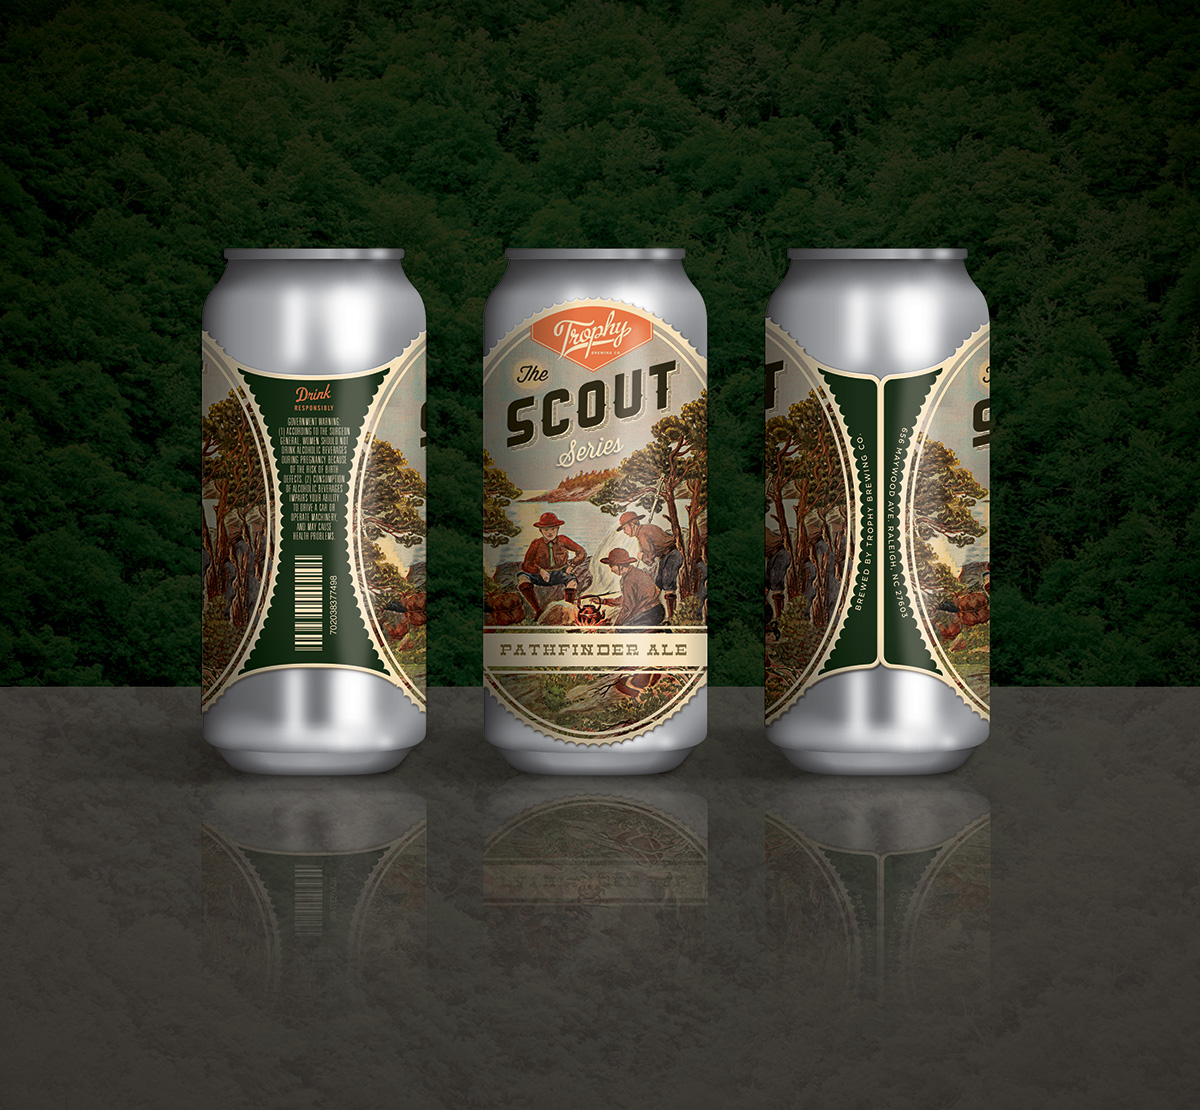 3. Mocked up on a can (full wrap)